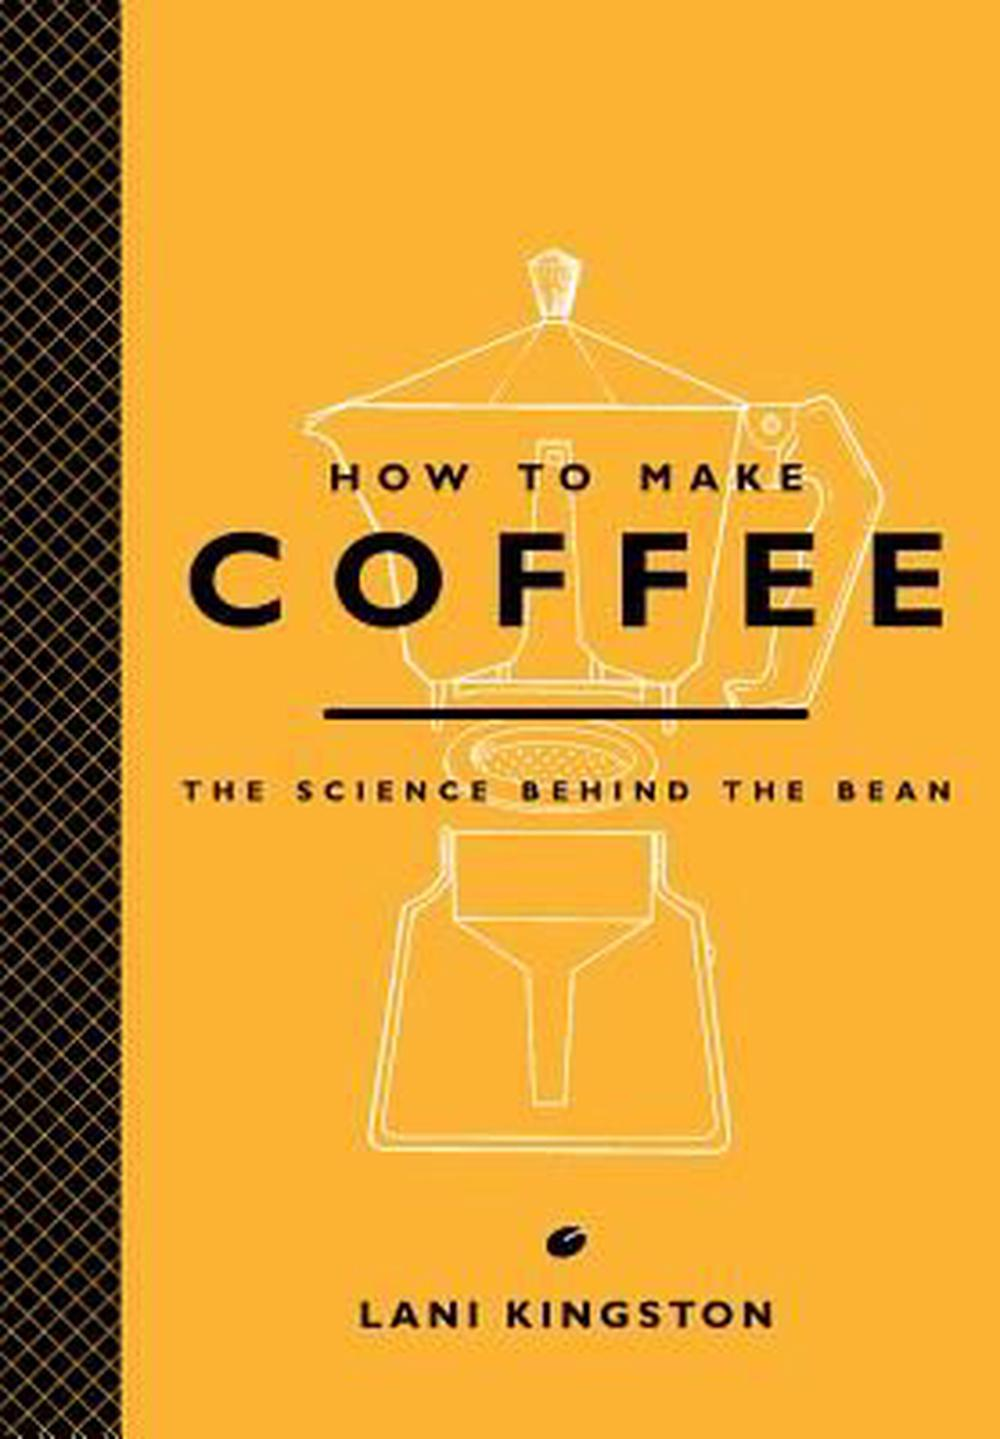 How to Make Coffee: The Science Behind the Bean